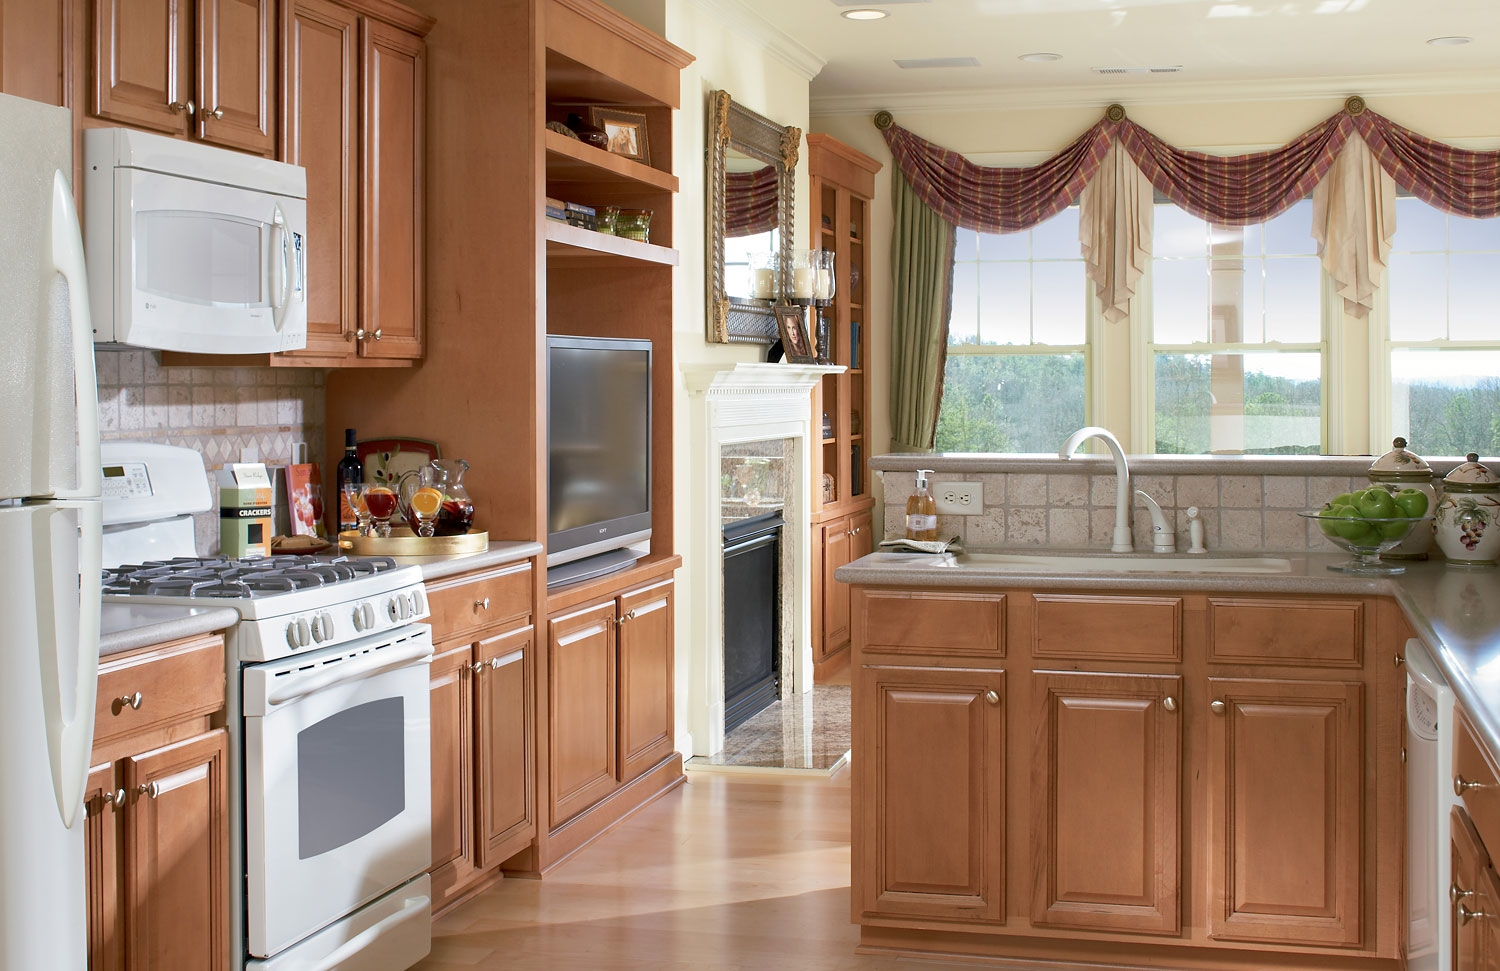 Mocha Glaze Kitchen Cabinetsscottsdale cabinets specs features timberlake cabinetry